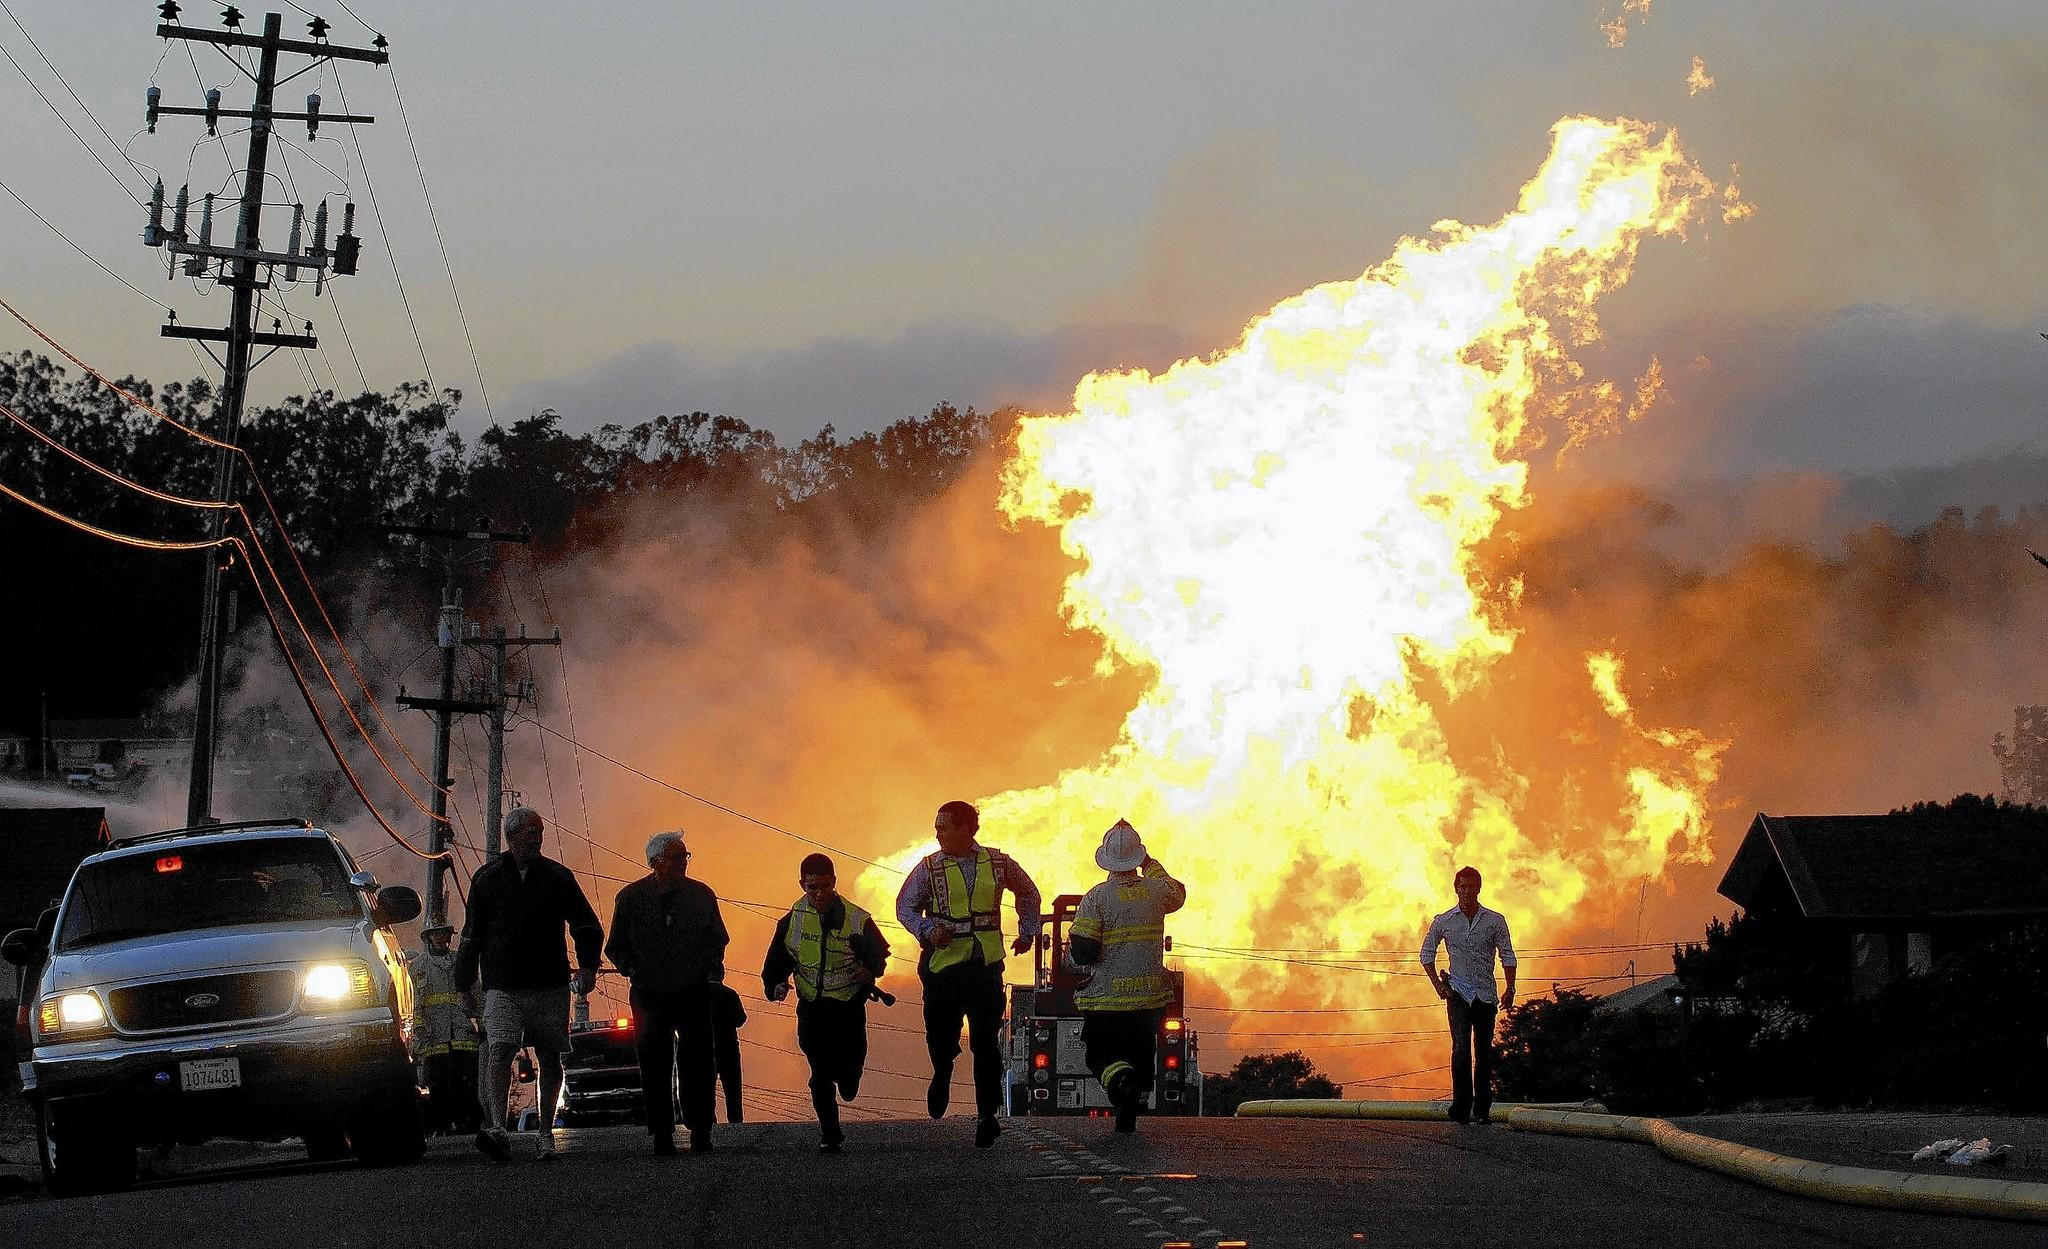 Honda San Bruno >> PG&E expects criminal charges in connection with 2010